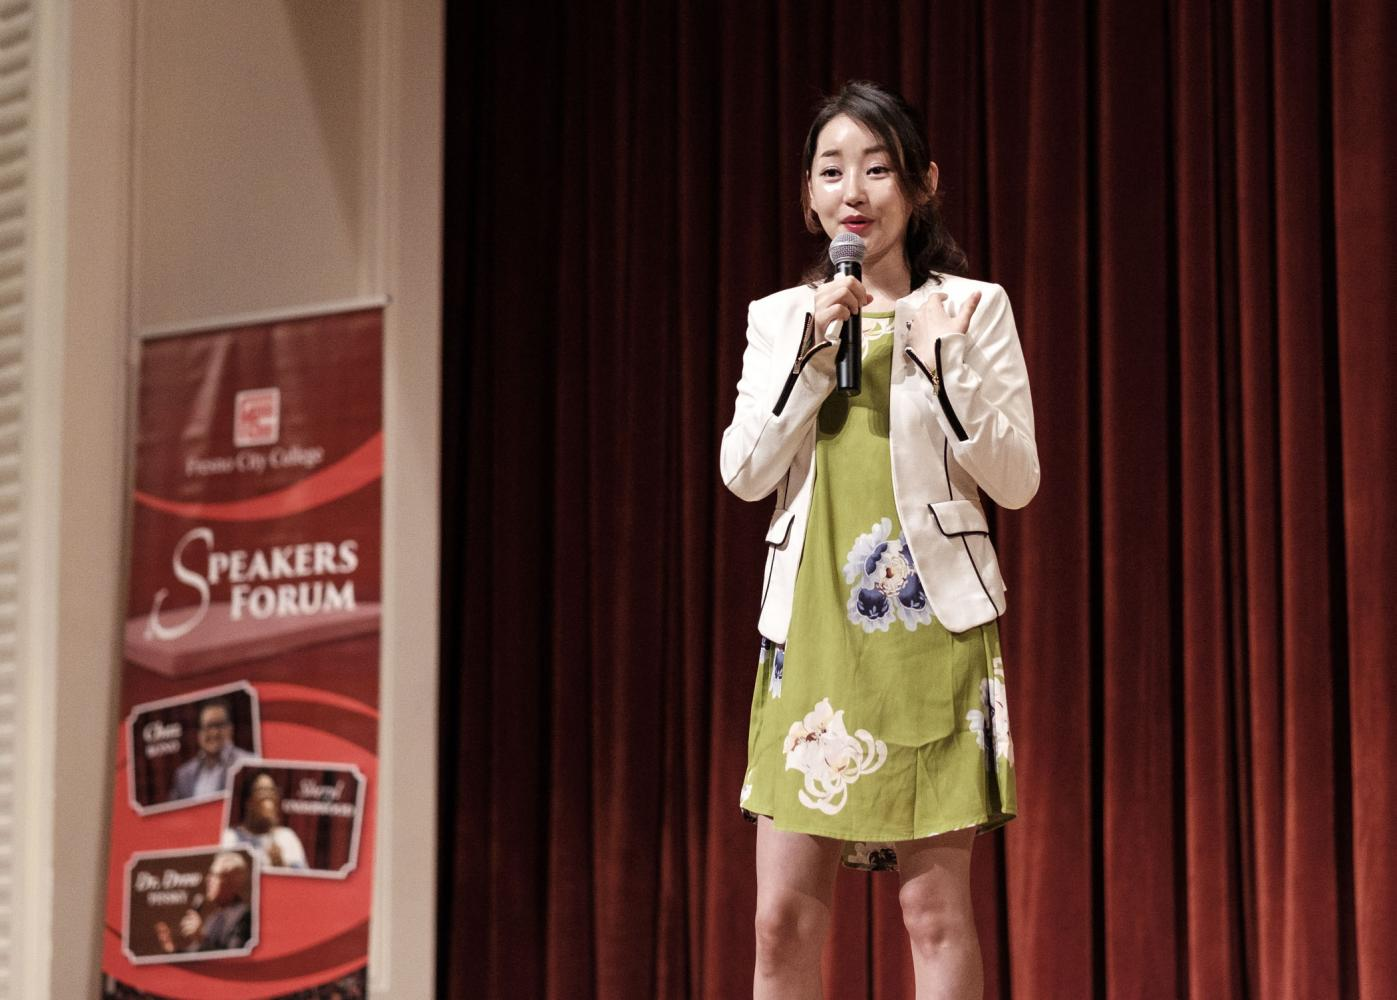 Yeonmi Park details her experience growing up as a child in North Korea during her talk for Fresno City College's Speakers Forum series in the OAB auditorium on Thursday, Oct. 19, 2017.